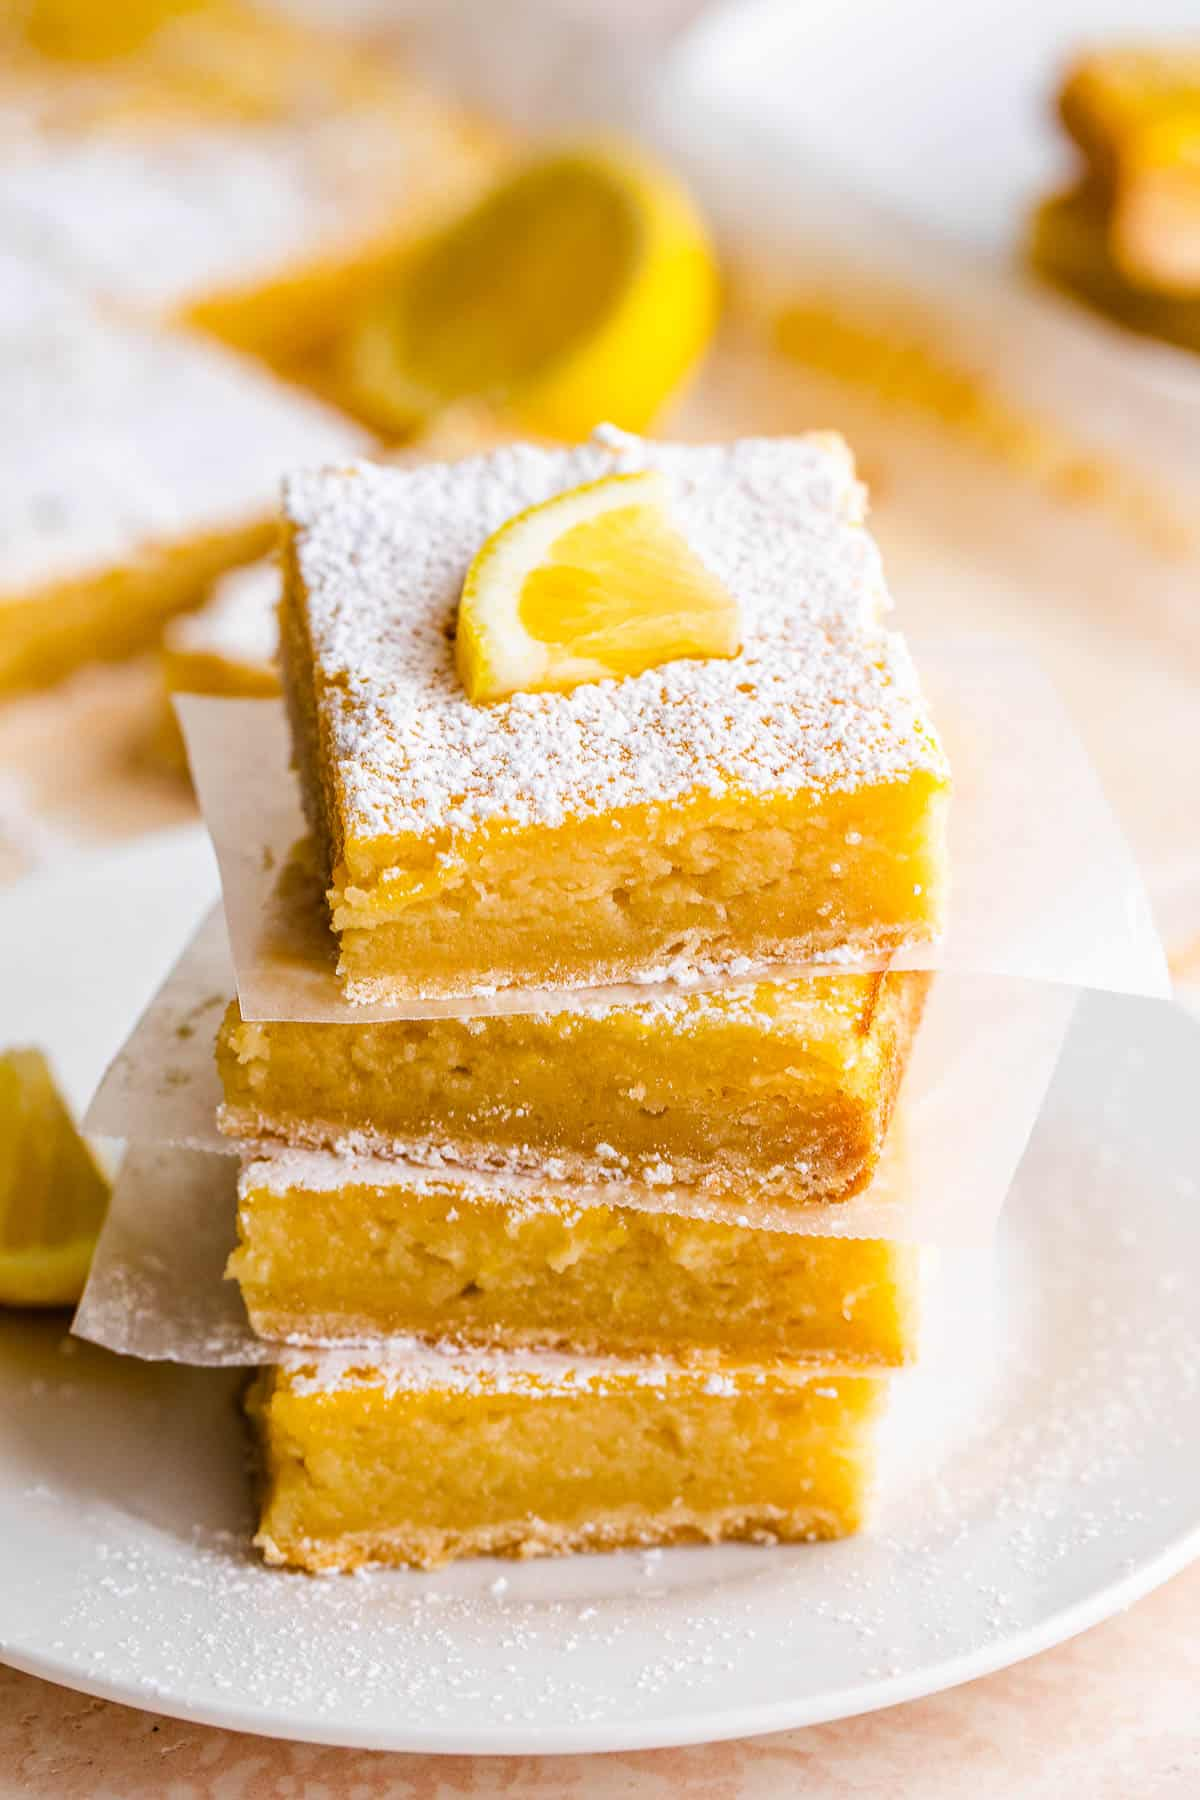 four lemon bars stacked one on top of the other and finished with a dusting of powdered sugar and a slice of lemon on top